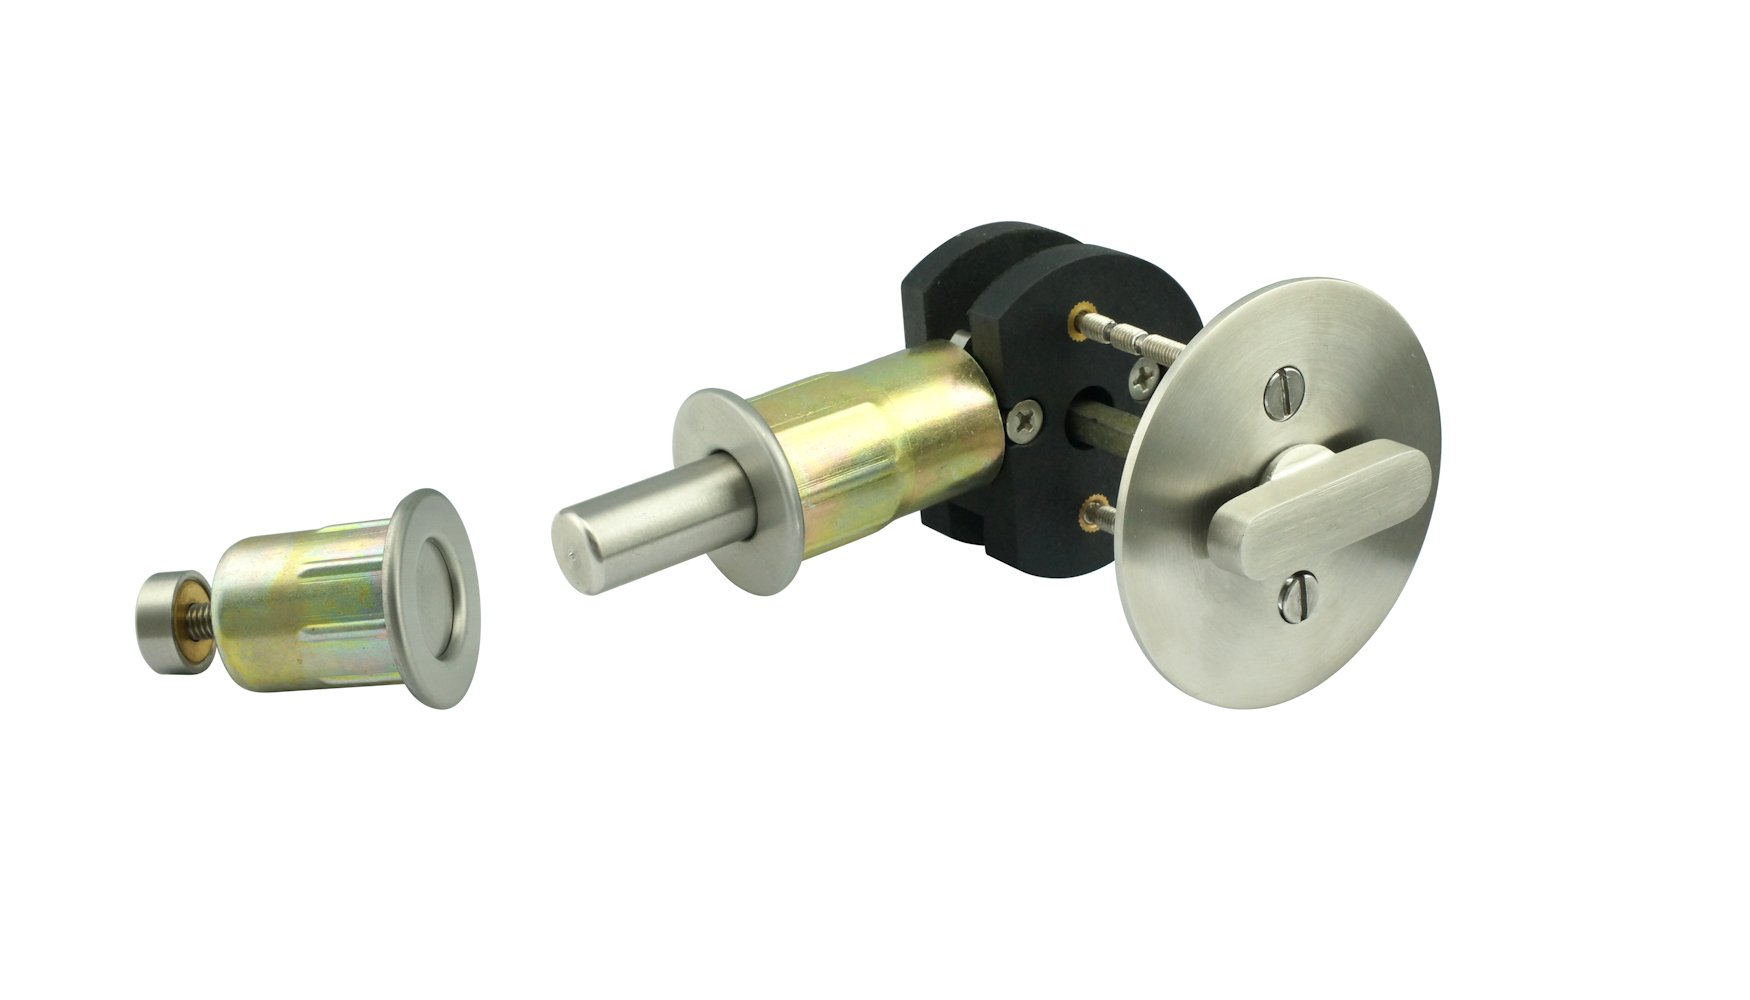 INOX EC1216-BD4214-32D 2-1/4'' BS TT16 Turn Barn Door Privacy Lock with Round Rose, 2.25'' Face, Satin Stainless Steel